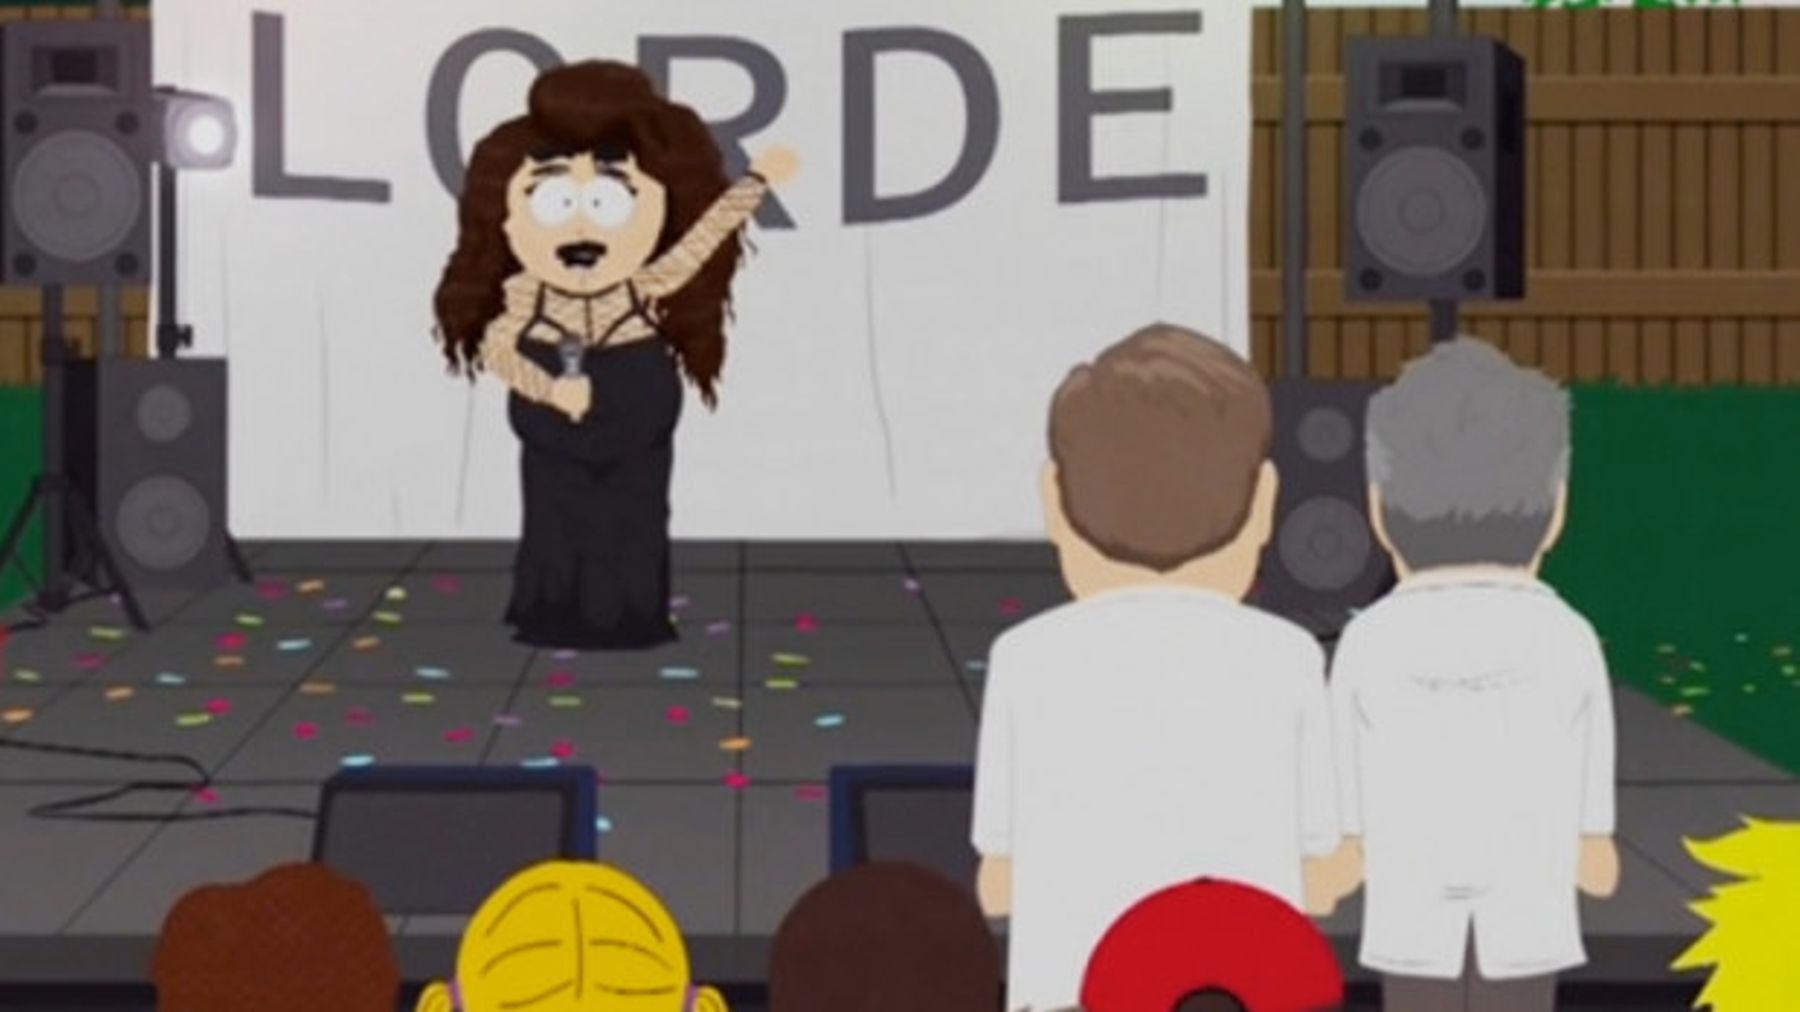 South Park Does A Lorde Skit  But Who's It Taking The P*ss